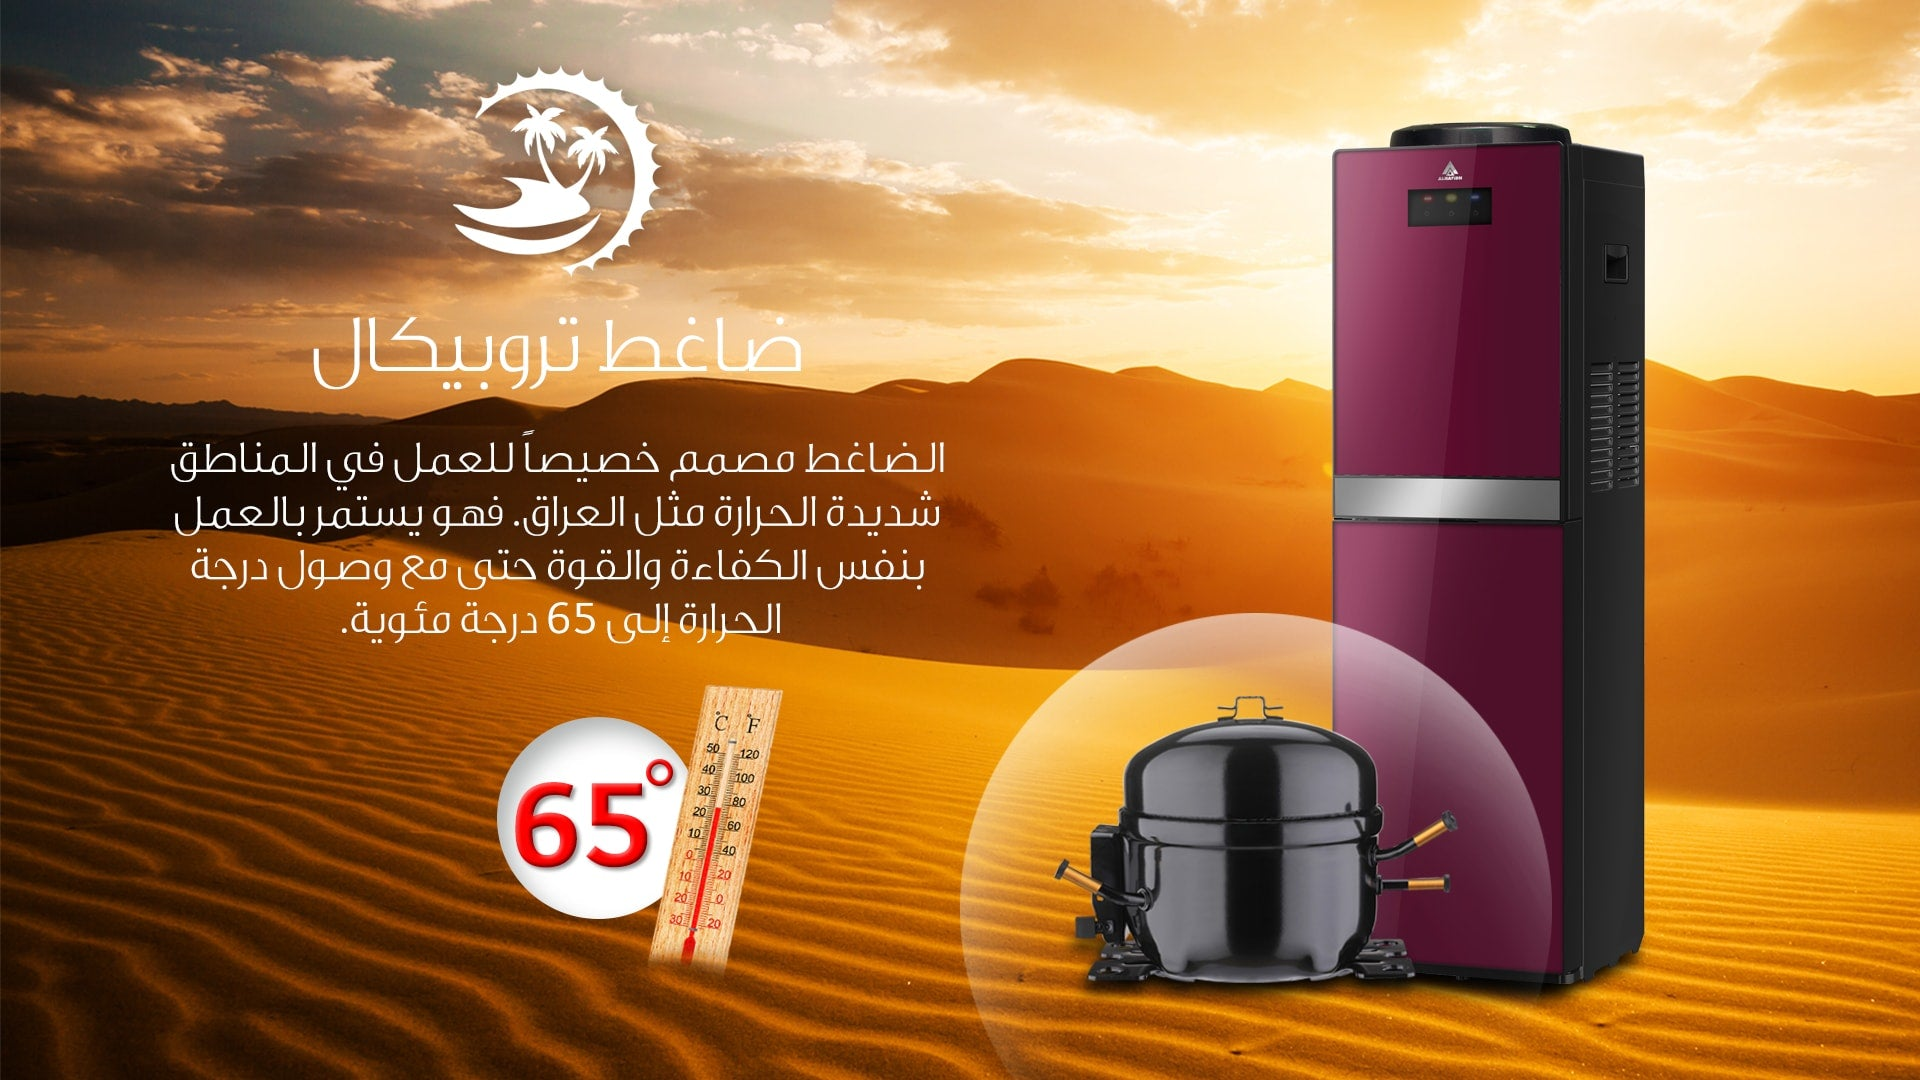 feature Tropical_Compressor ALHAFIDH Free Standing Water Dispenser 3 Water Tap DHA-78DSR